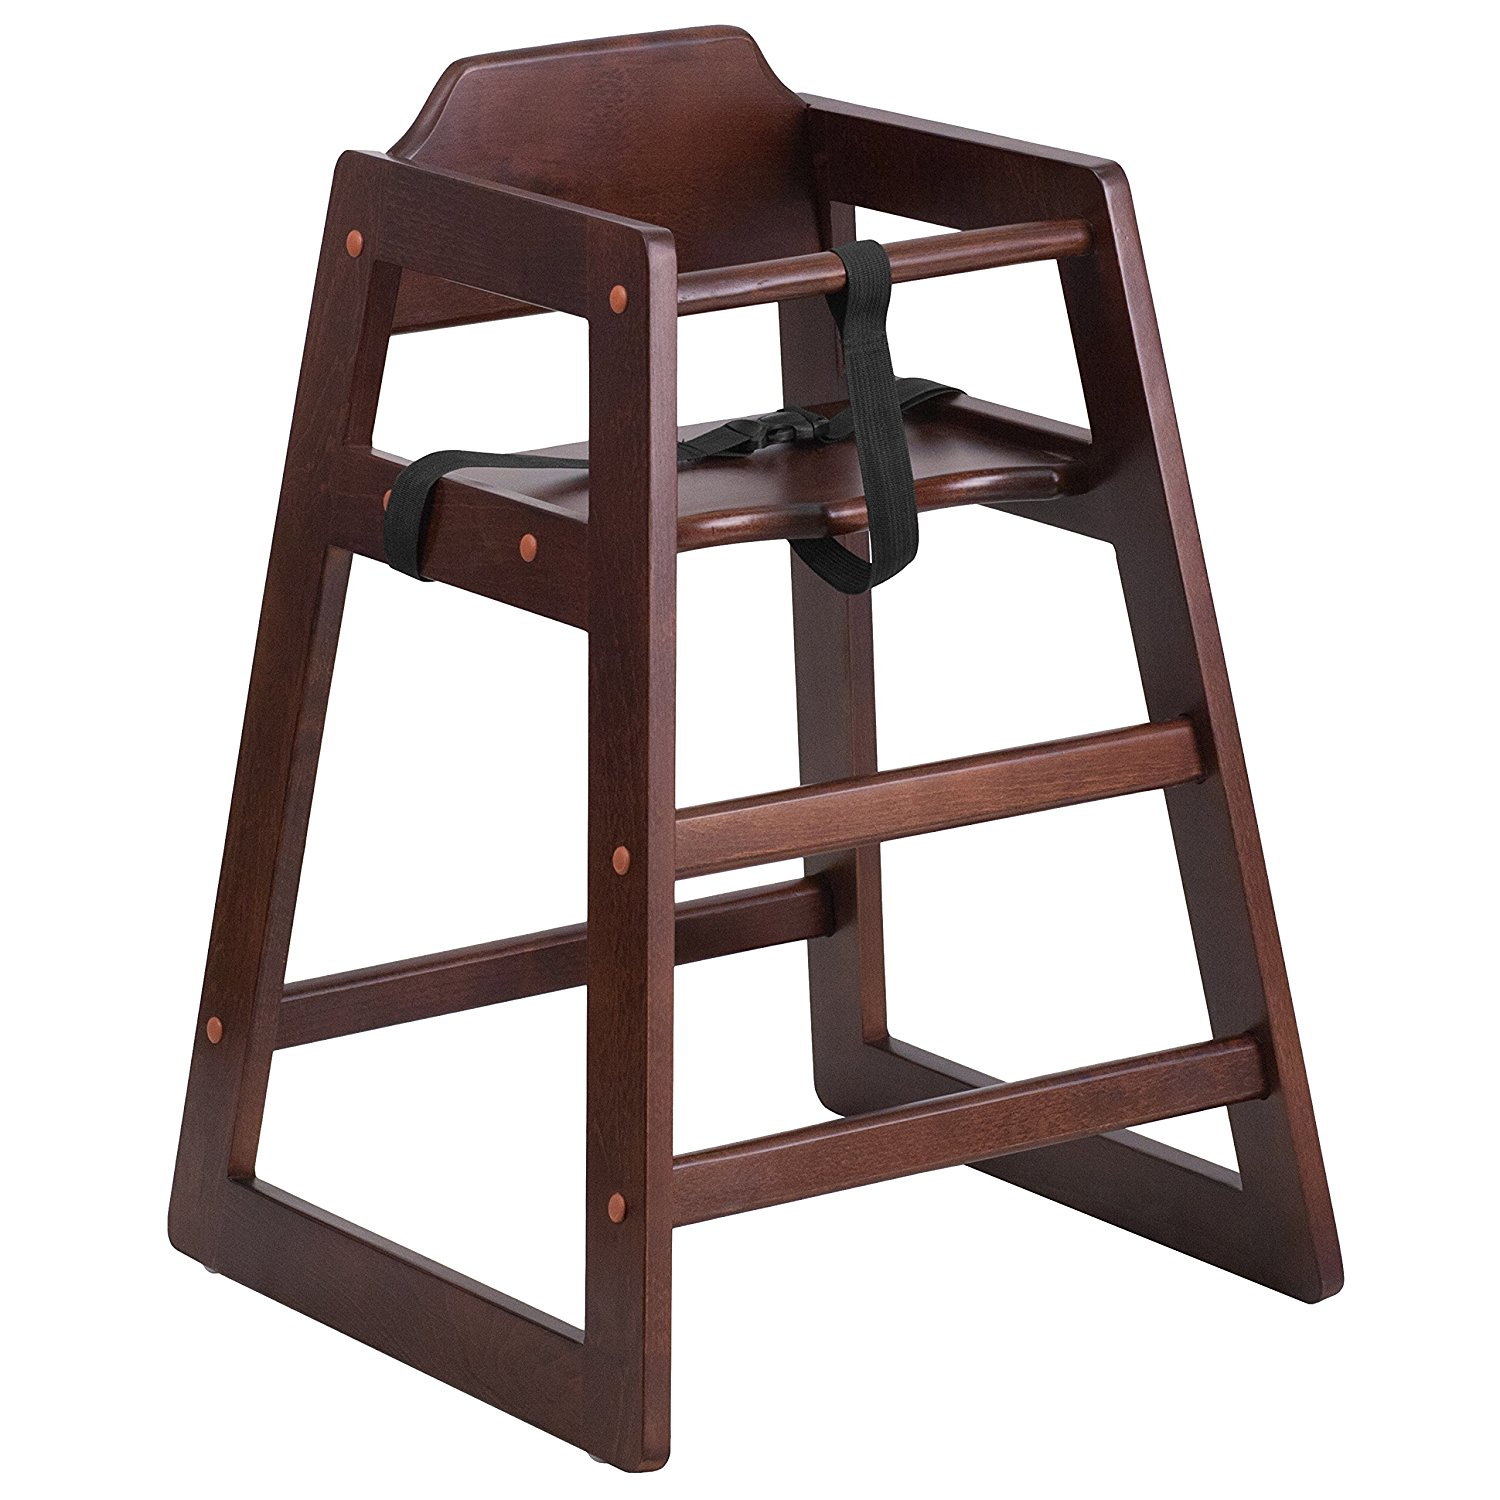 HERCULES Series Stackable Walnut Baby High Chair